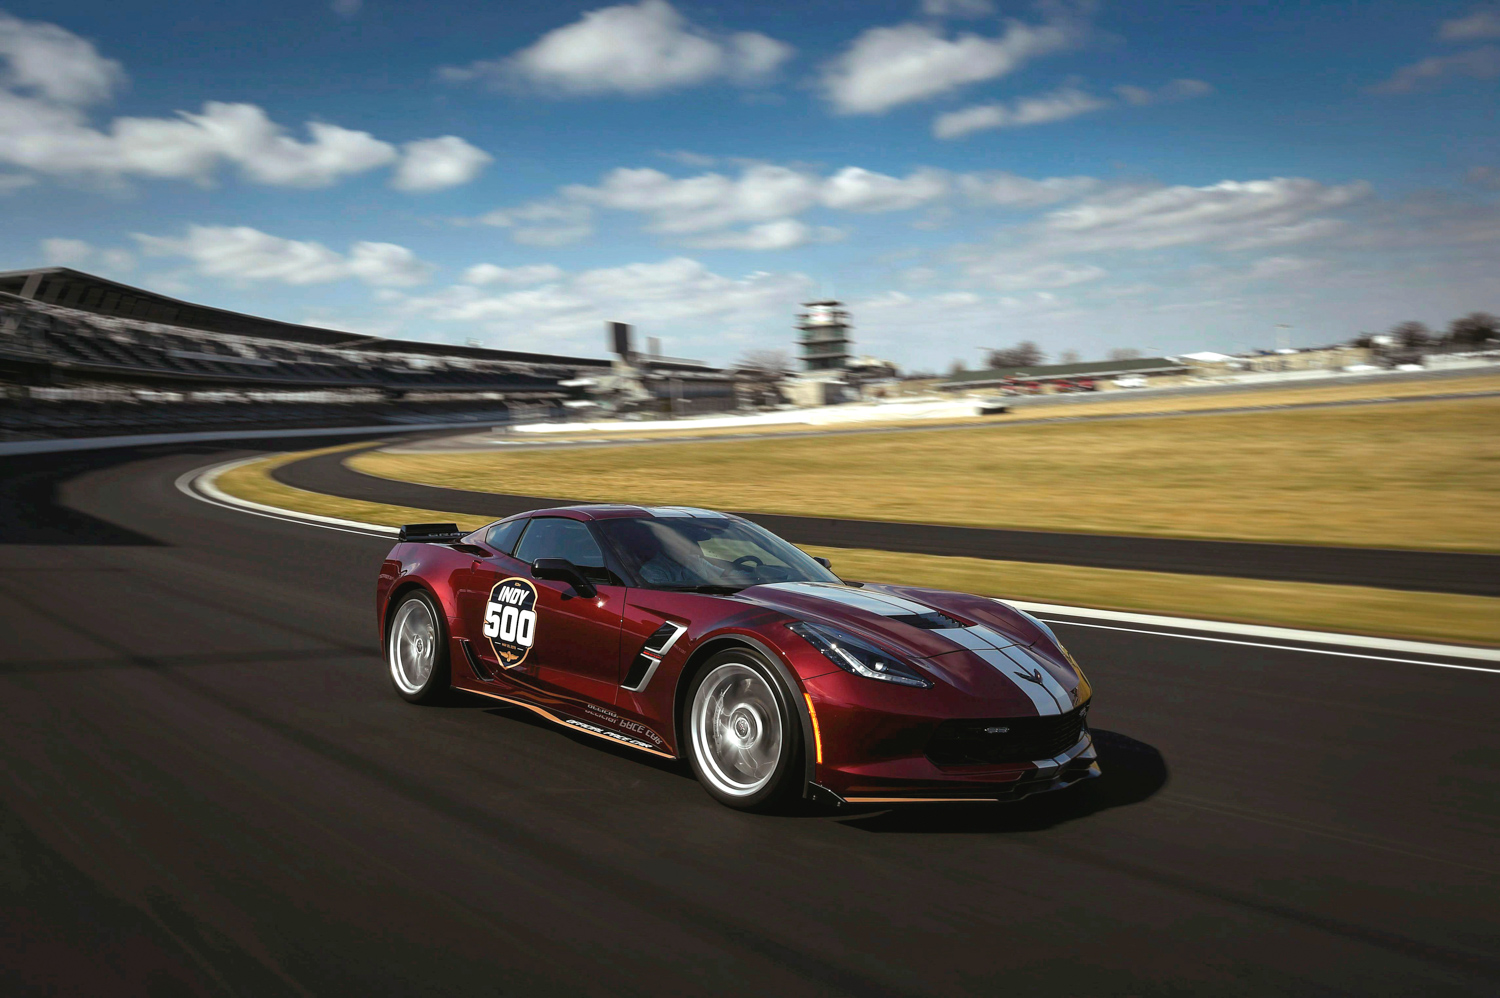 2019 Chevy Corvette Grand Sport to pace the 103rd Indy 500 thumbnail